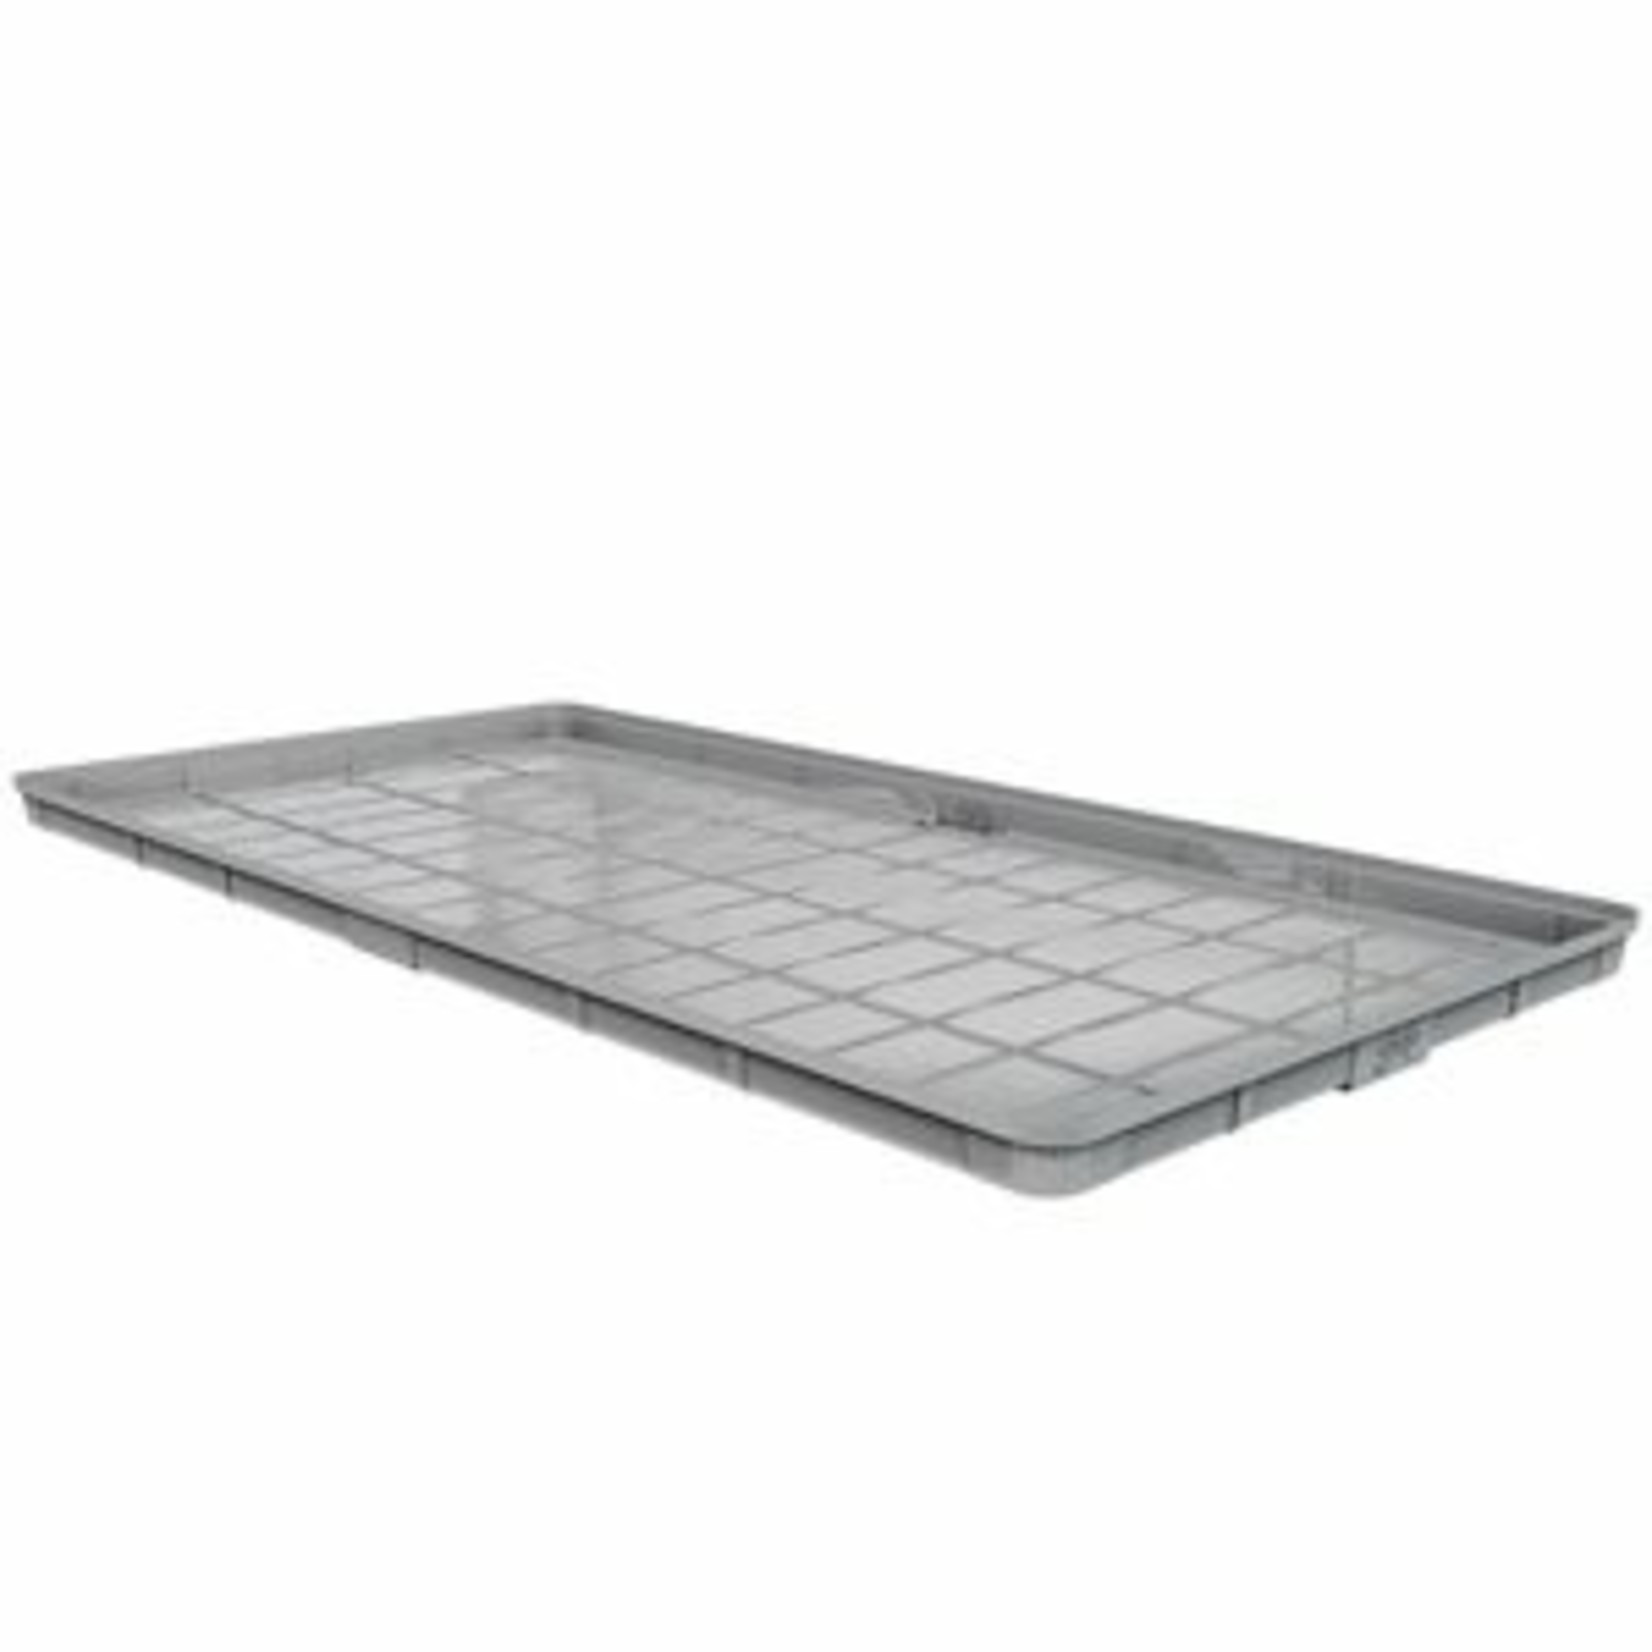 Commercial Tray 4' x 8' Grey